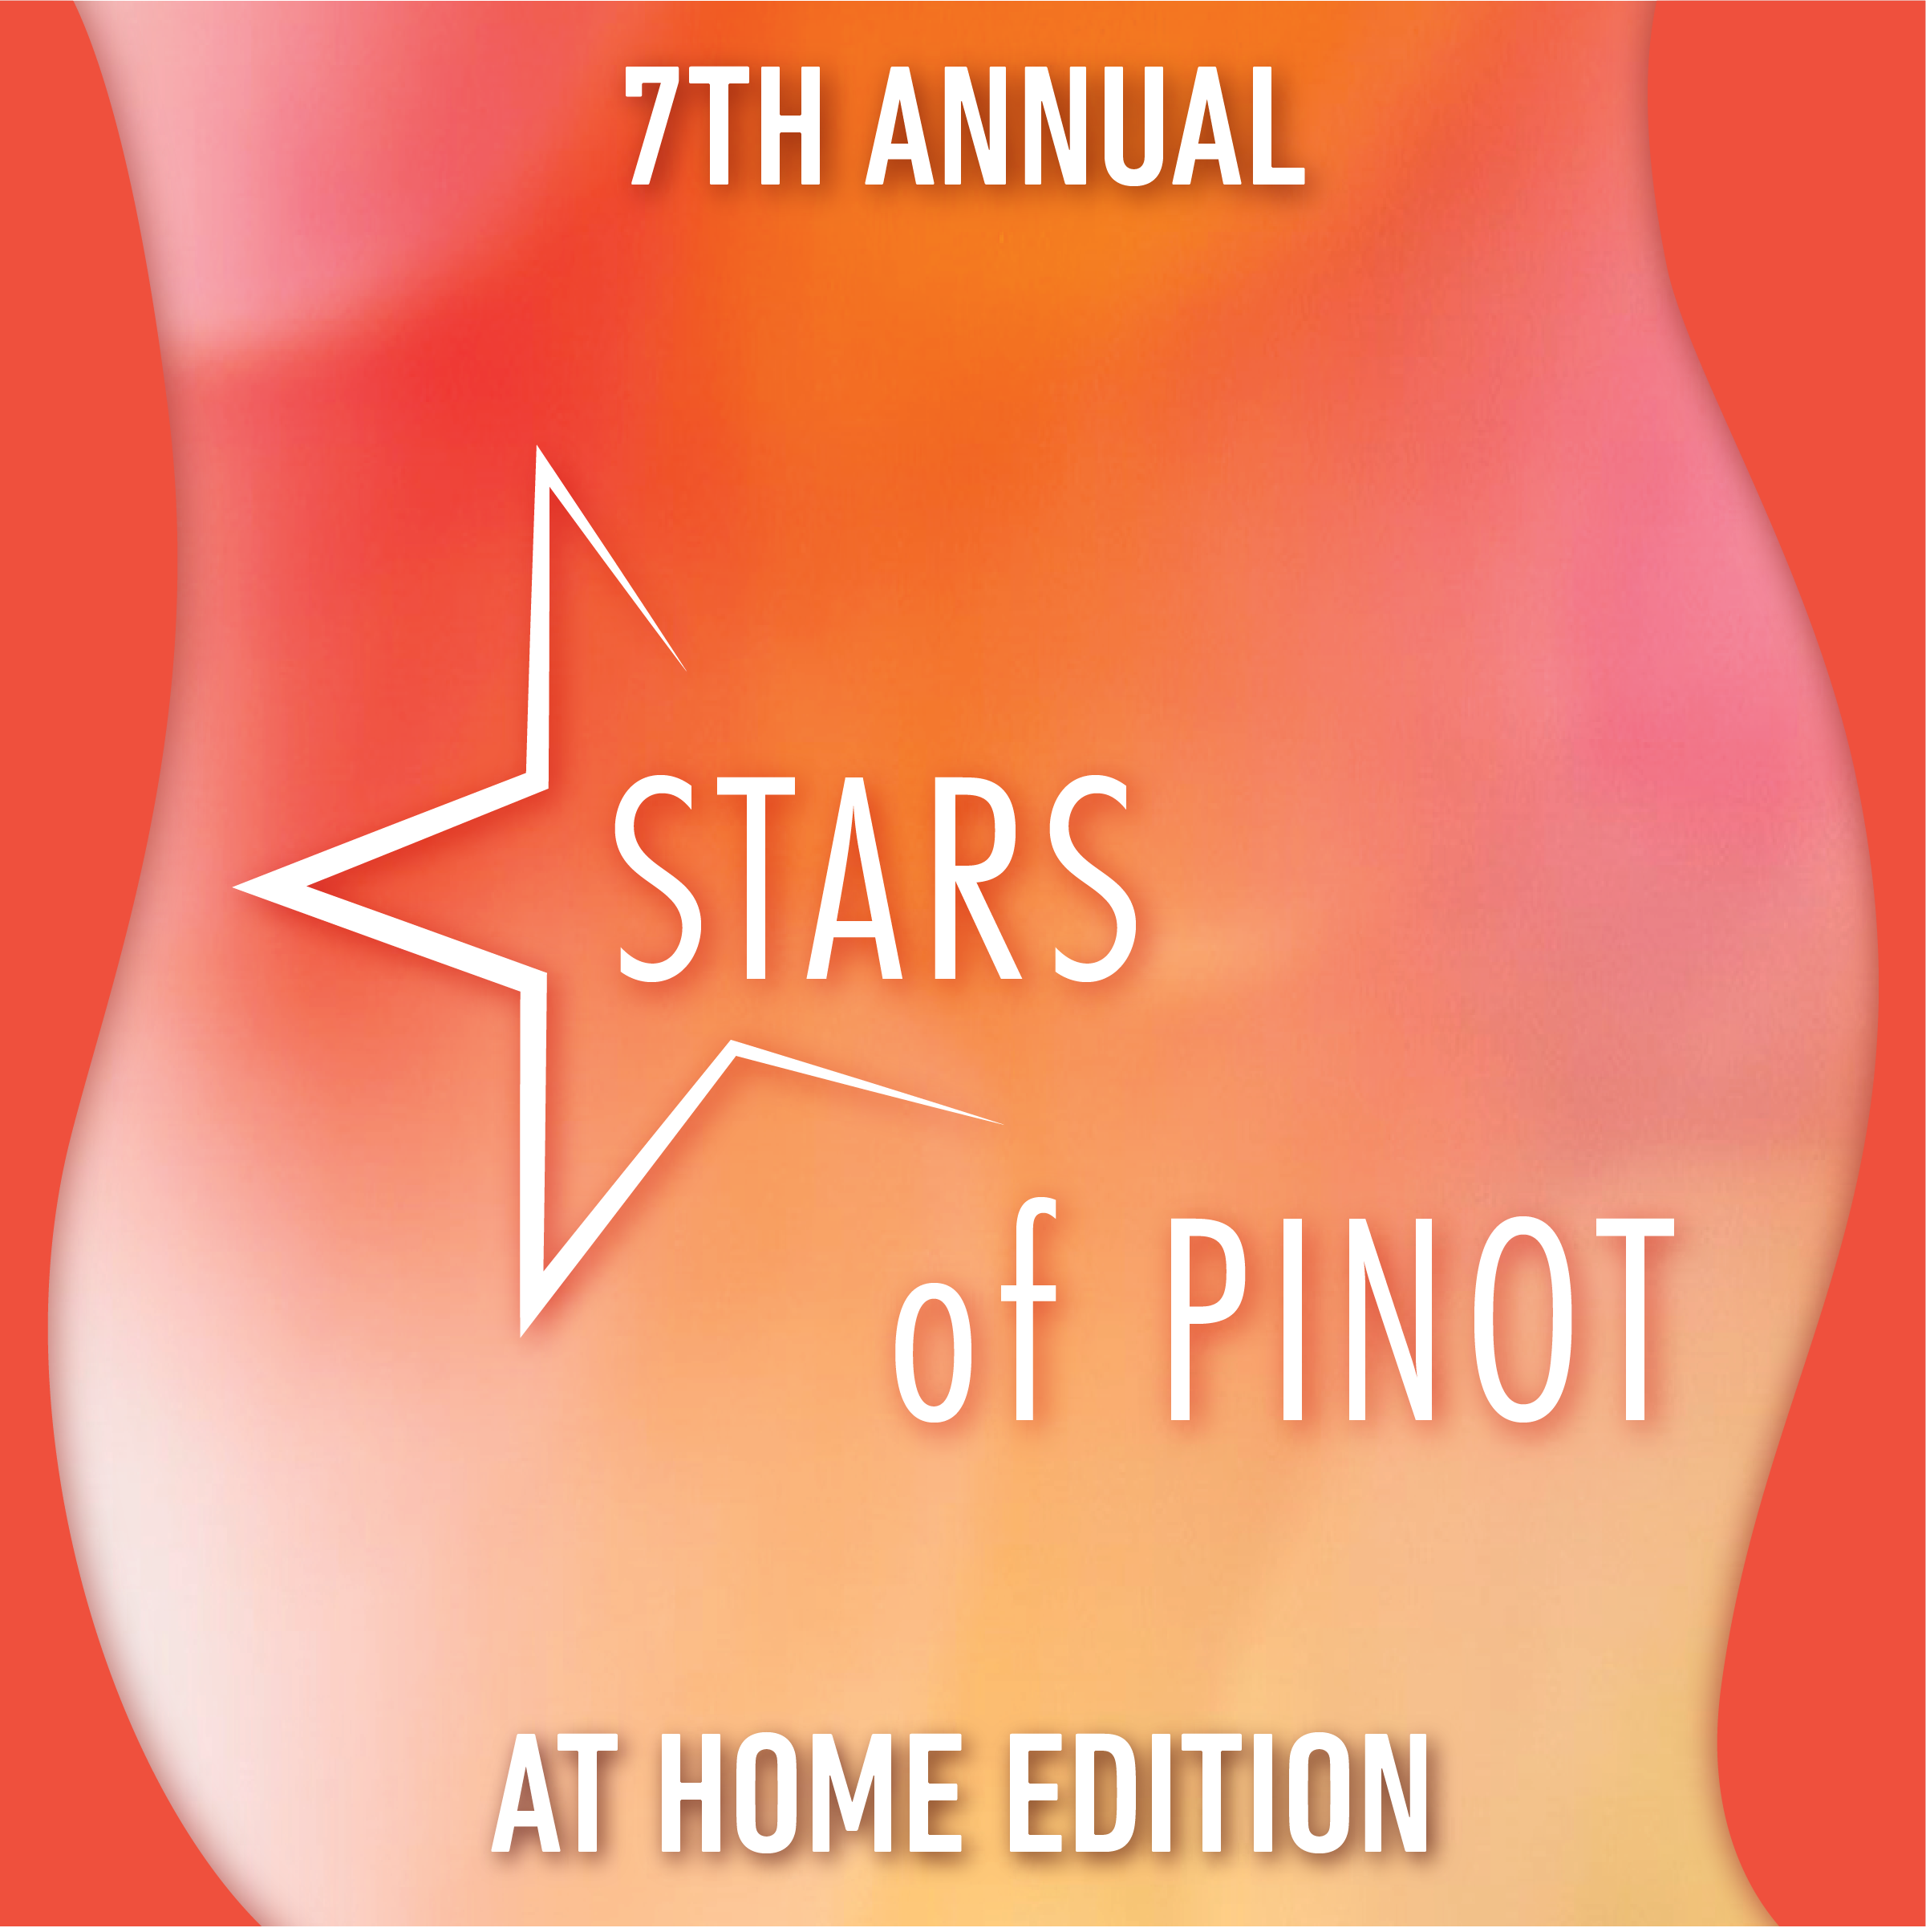 STARS of Pinot Event Image STARS of Wine Online Wine Tasting Image Learn About Wine